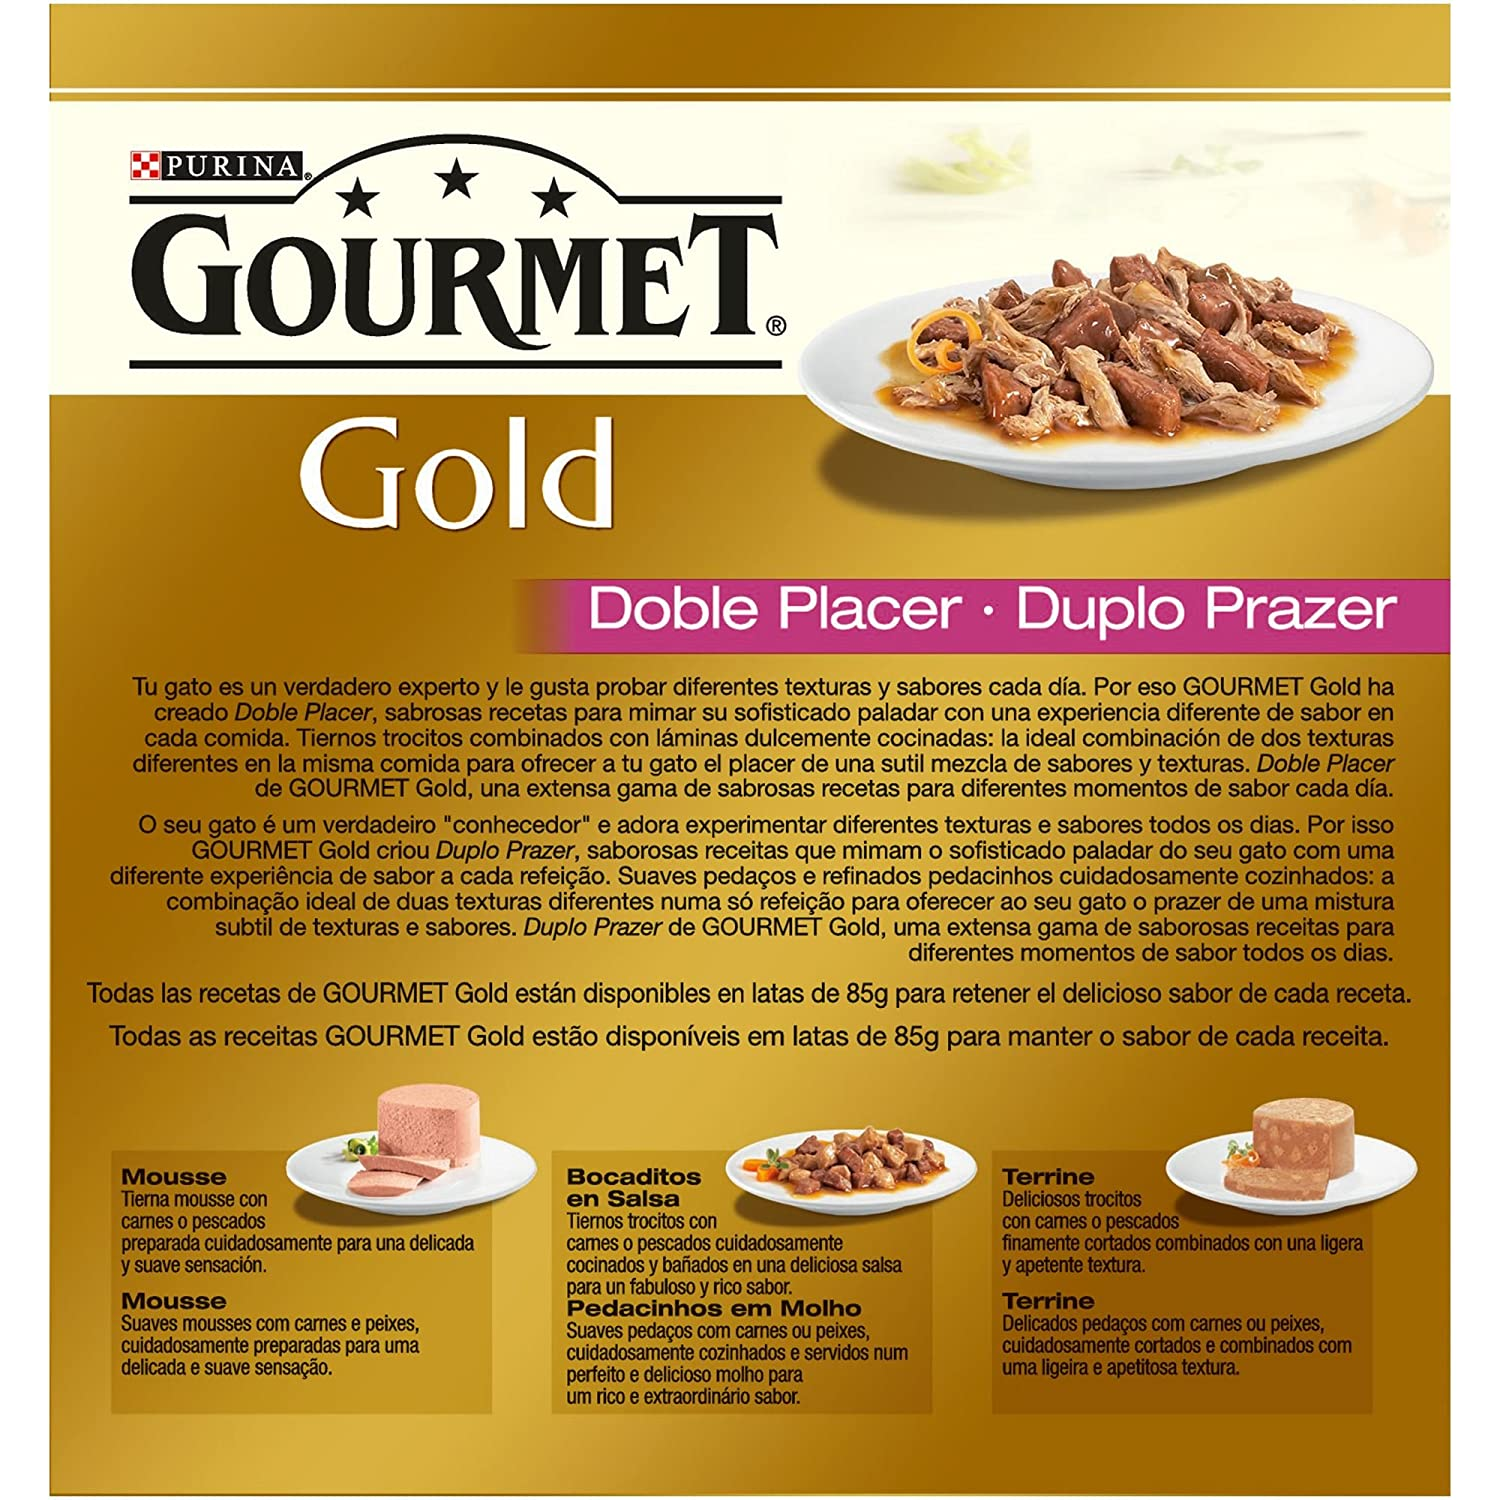 Purina Gourmet Gold Doble Placer comida para gatos Surtido 12 x [8 x 85 g]: Amazon.es: Productos para mascotas